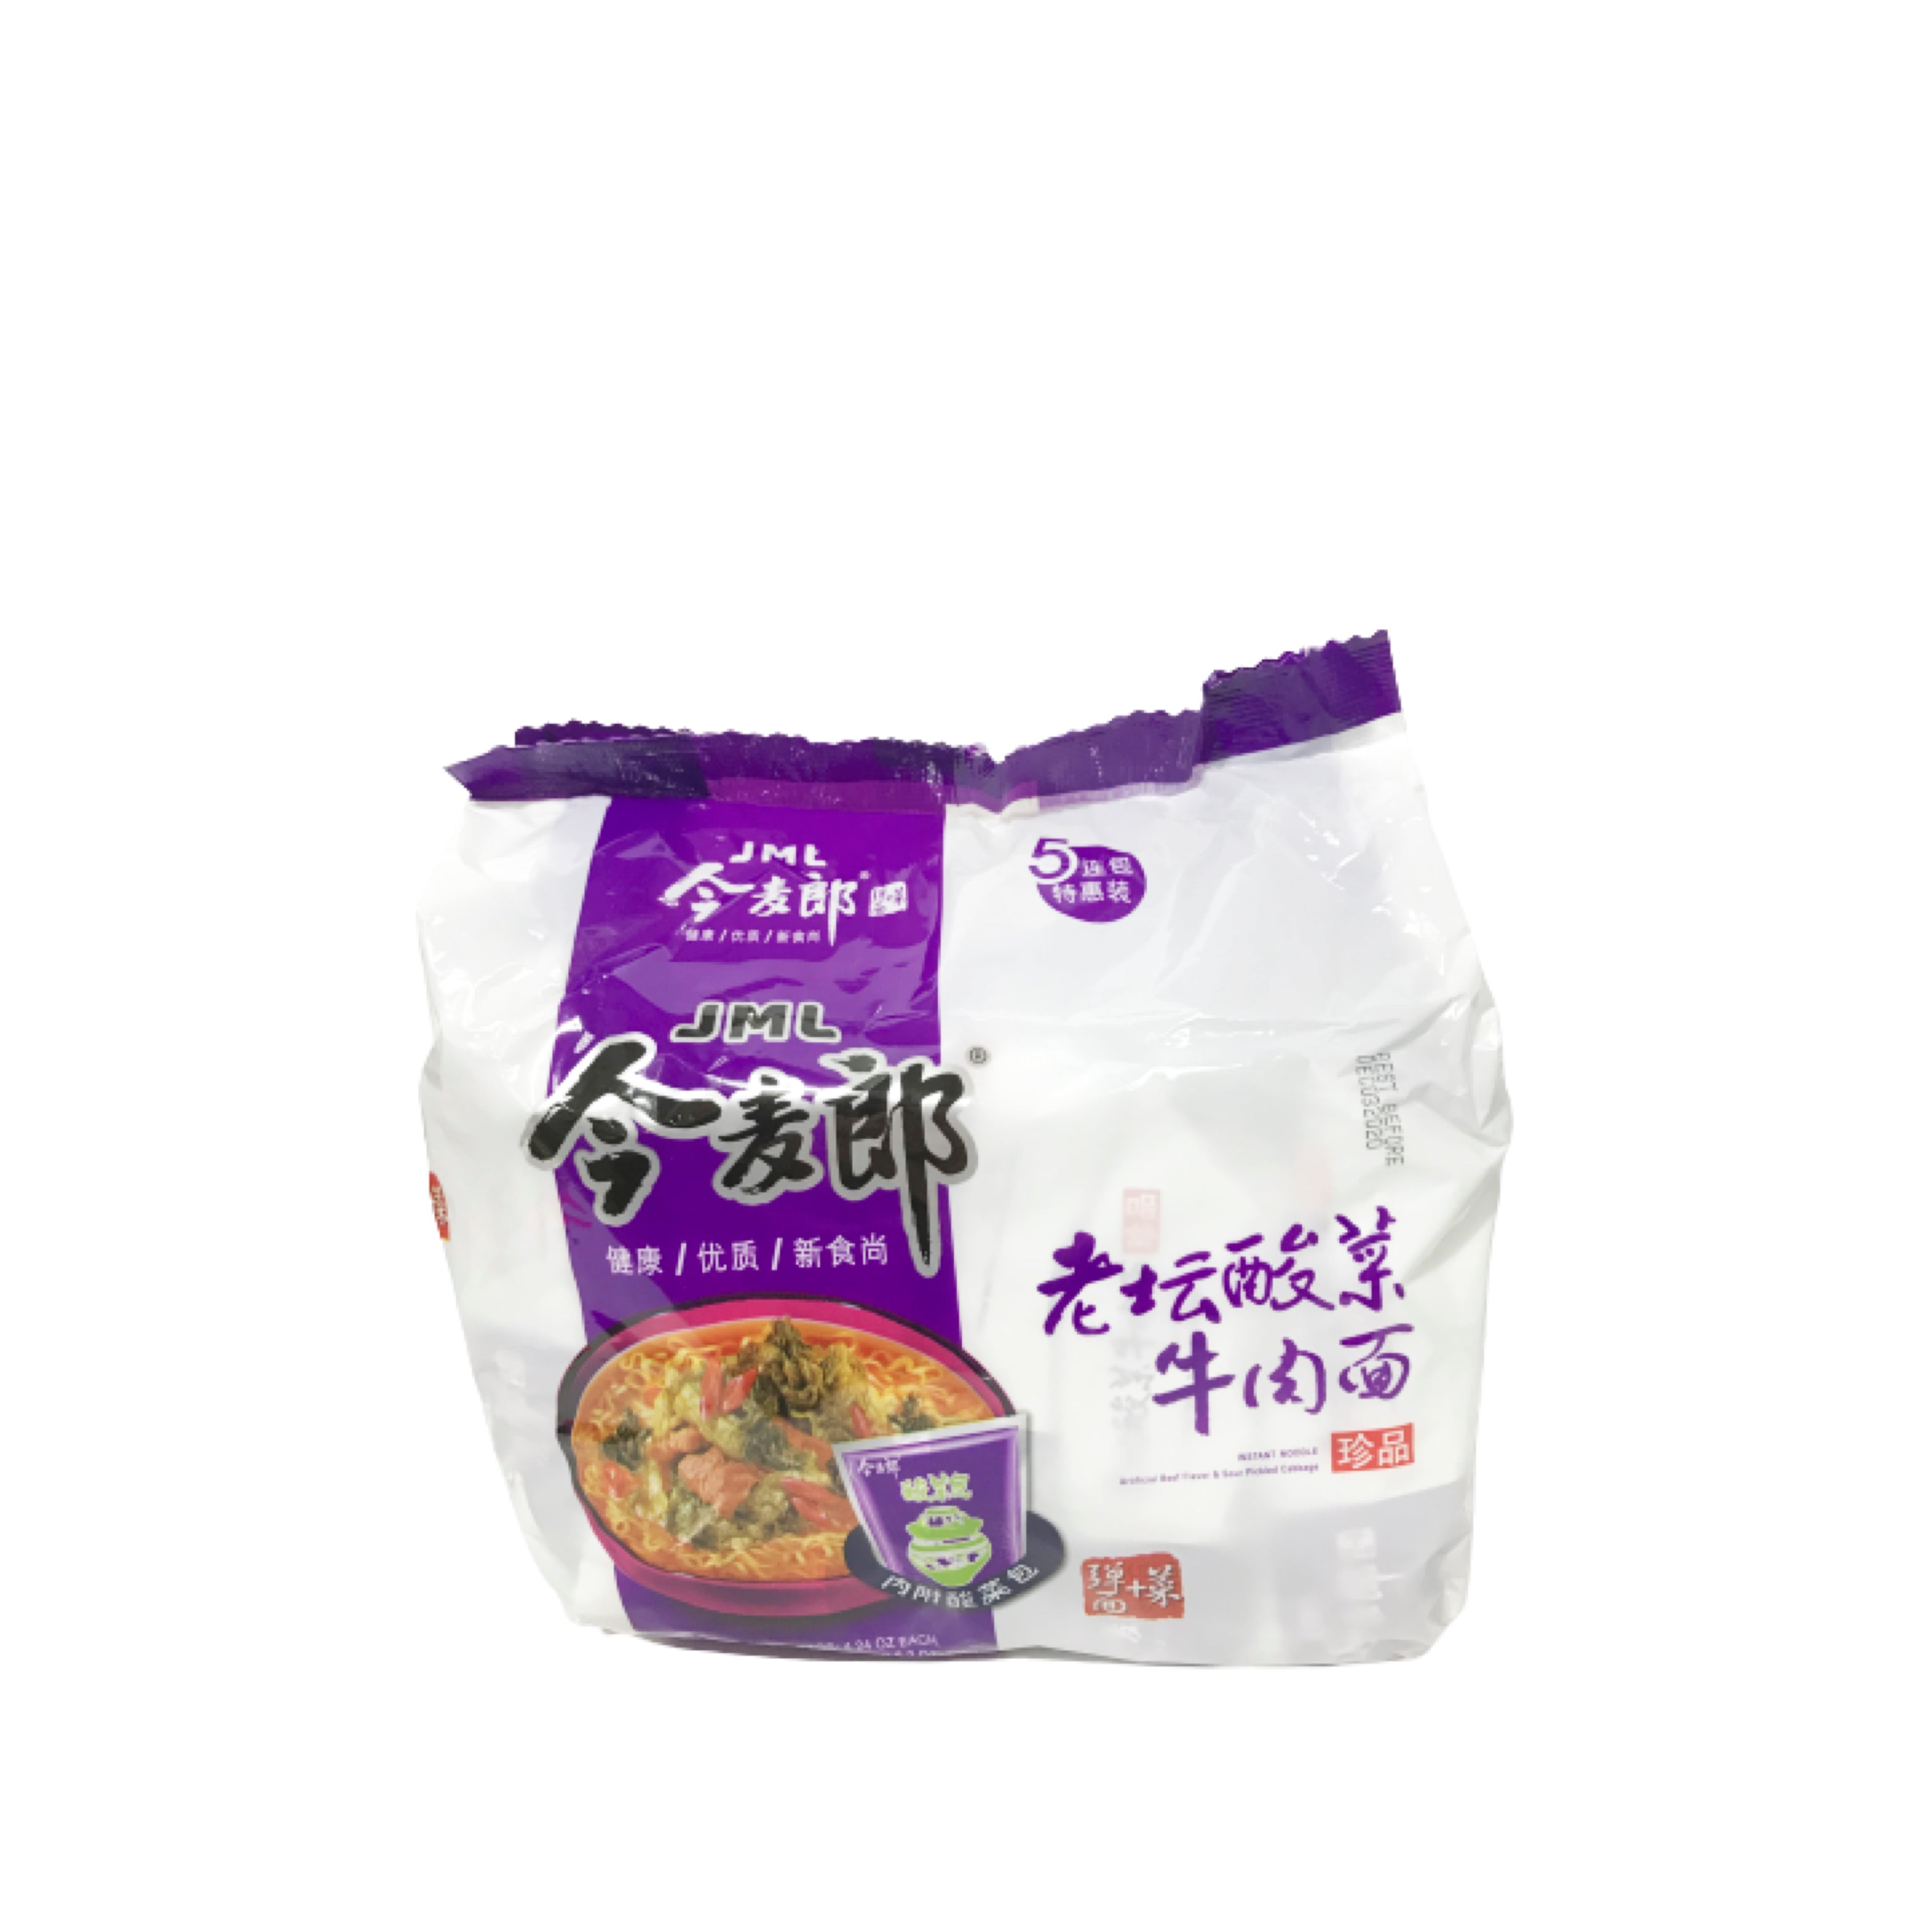 JML Beef & Sour Pickled Cabbage Noodle ( 5 packs) 今麥郎老壇酸菜牛肉麺